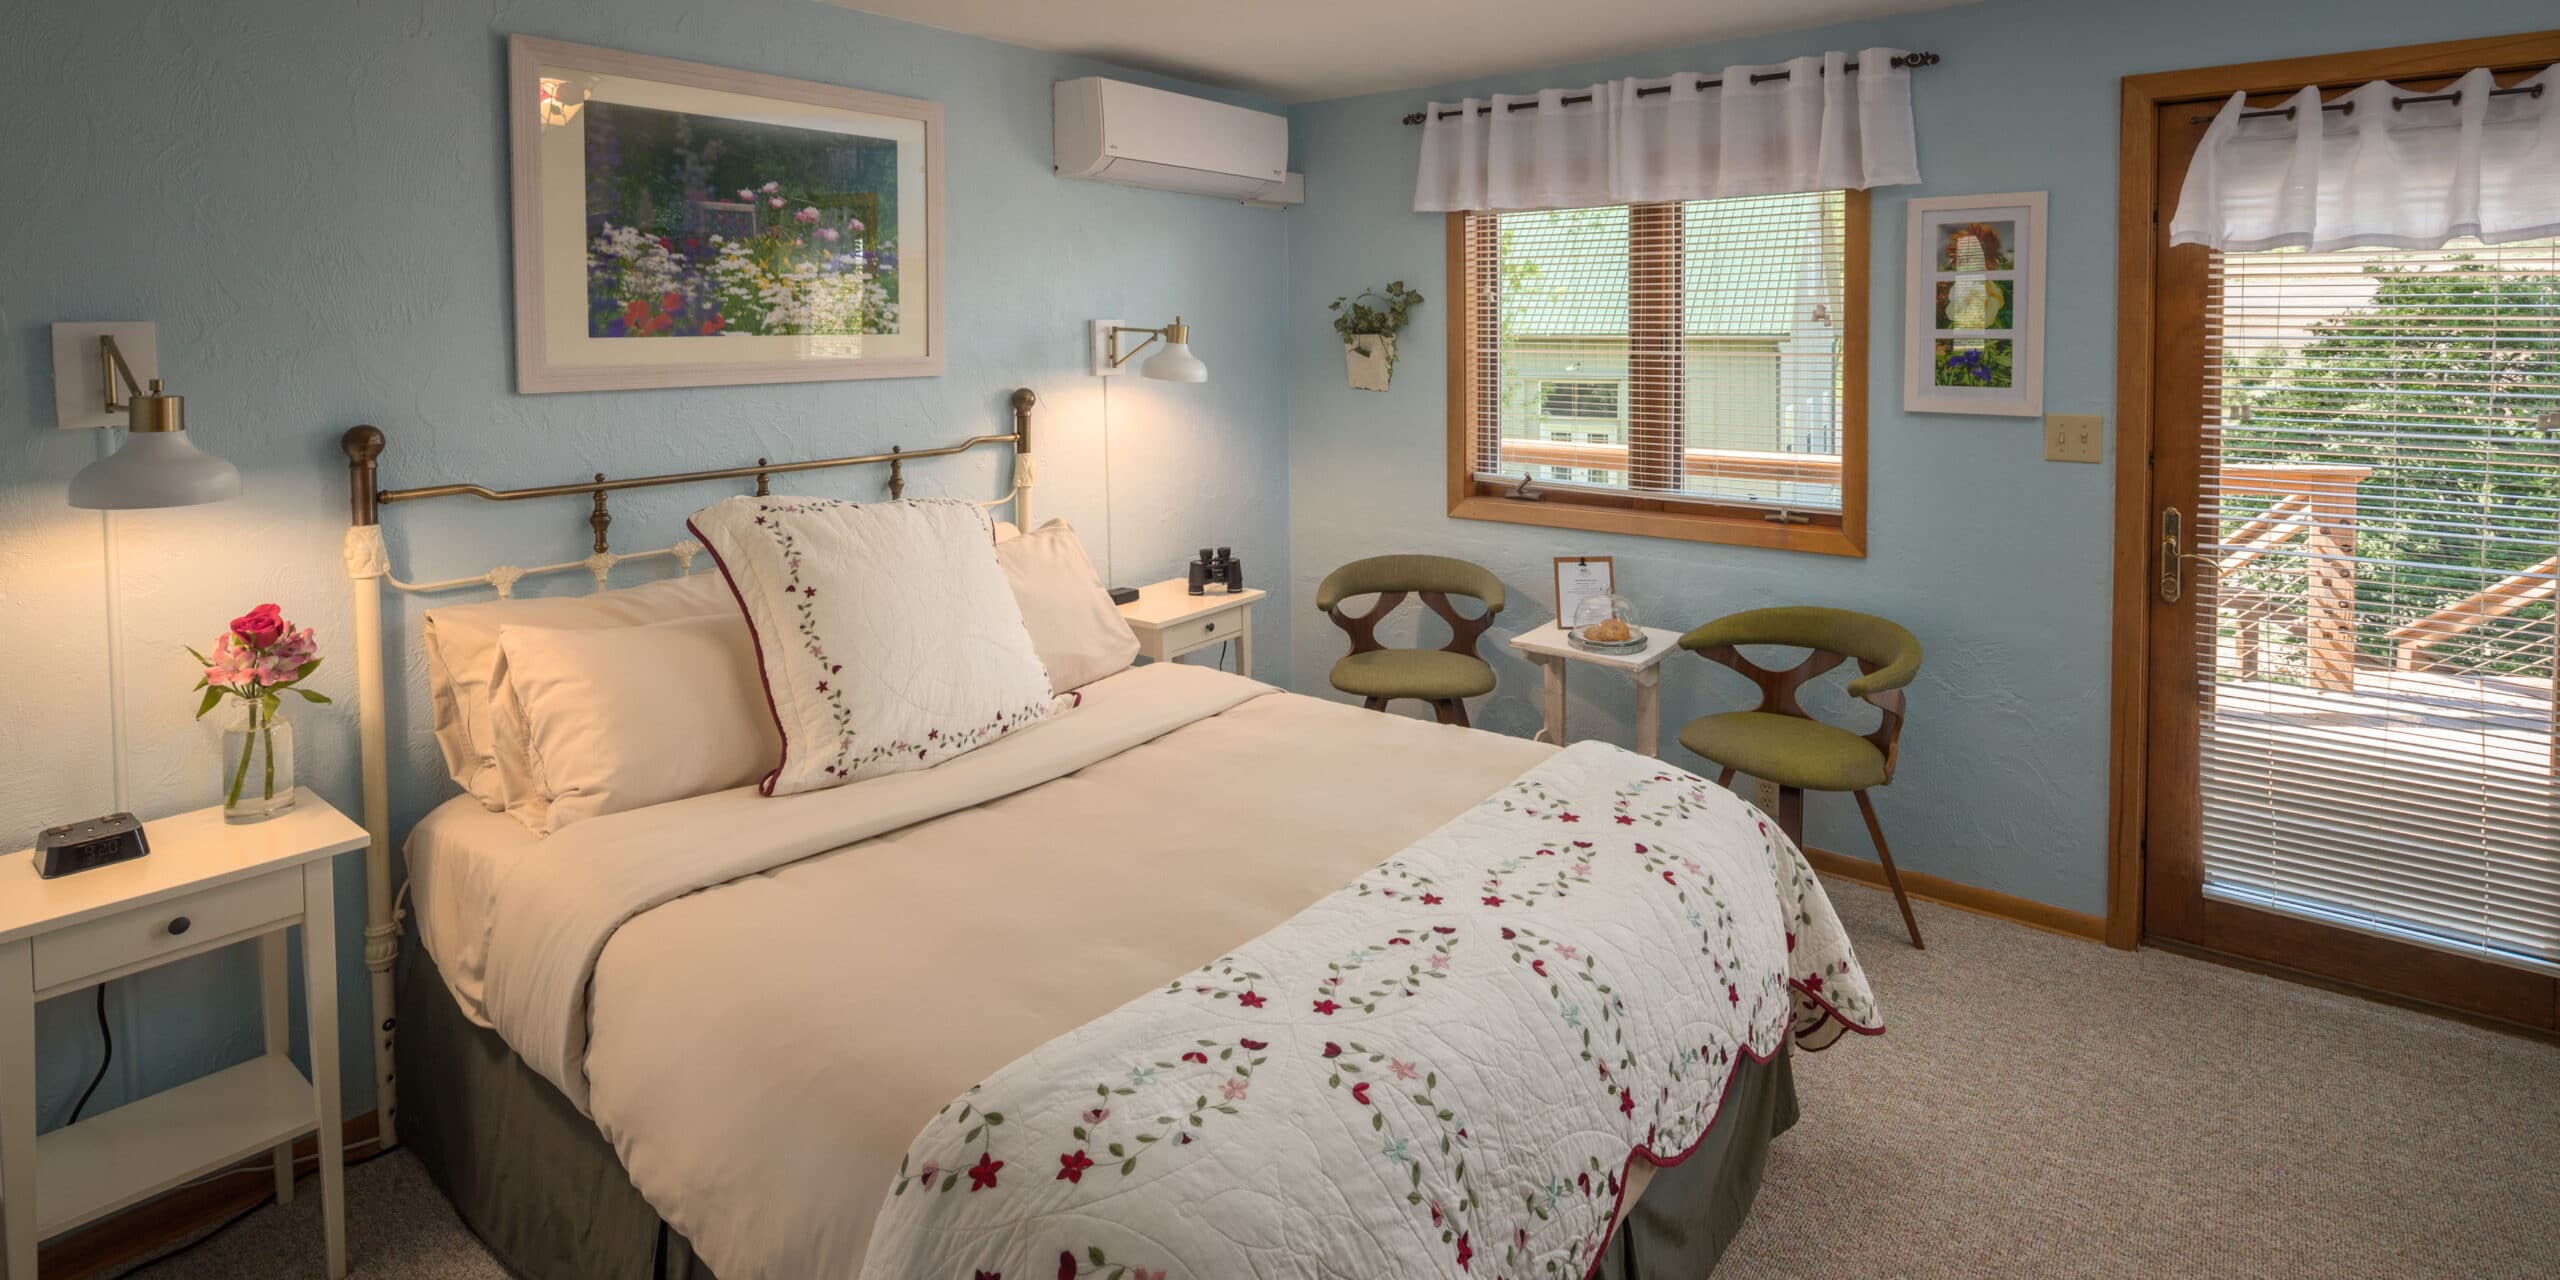 queen sized bed with 2 chairs in light blue room